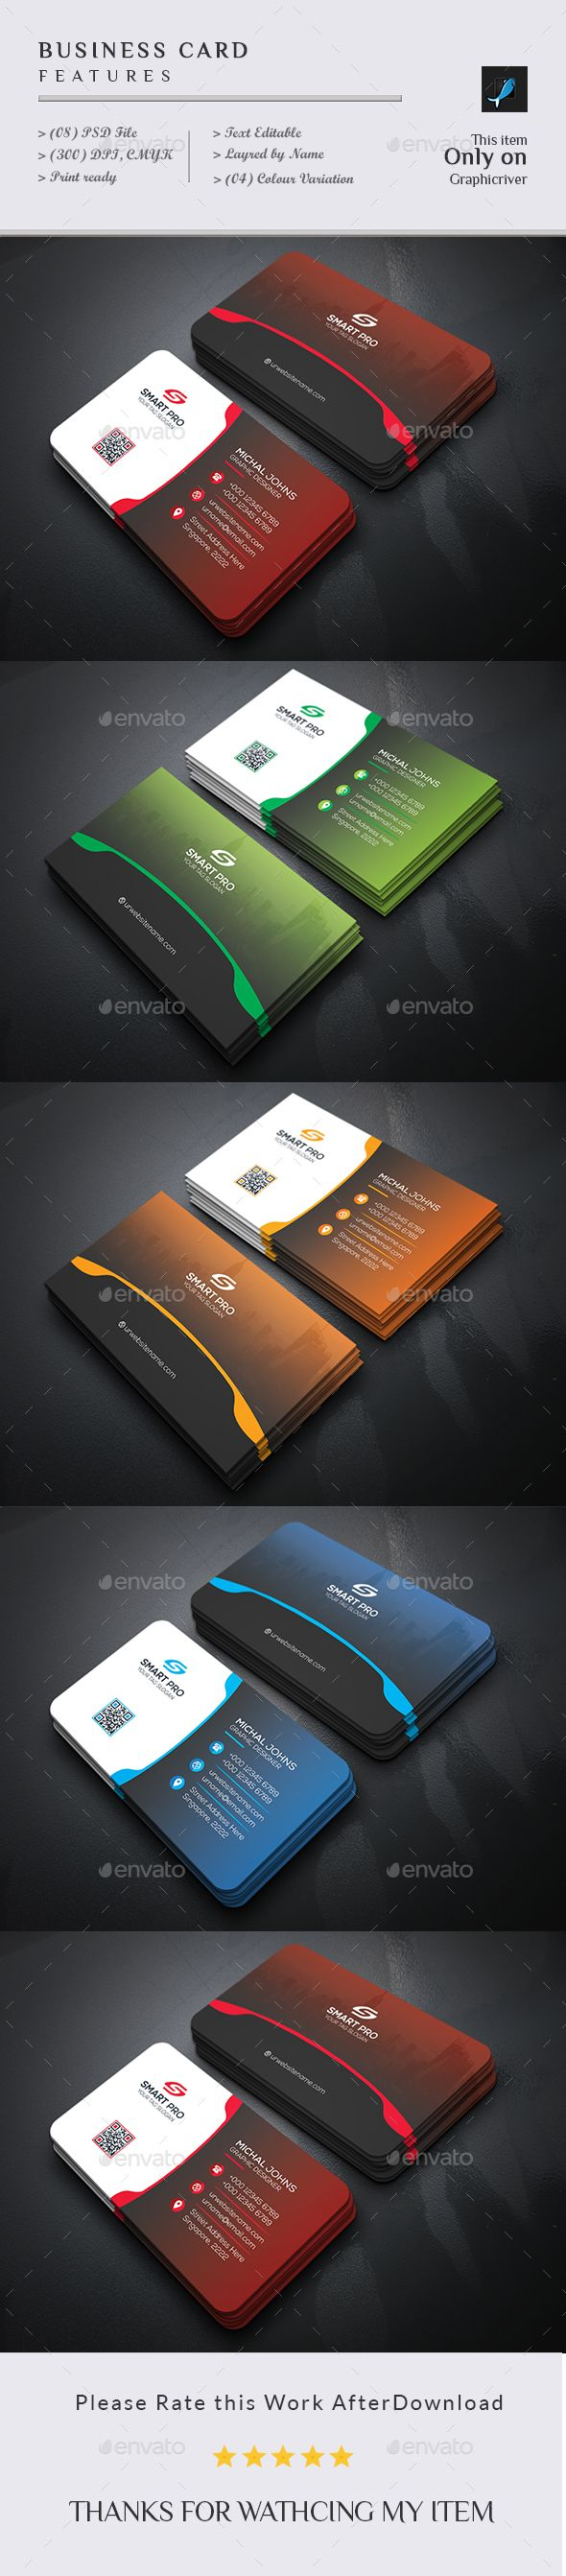 Business Card Design Template - Business Cards Print Templates PSD. Download here: https://graphicriver.net/item/business-card/19249374?ref=yinkira